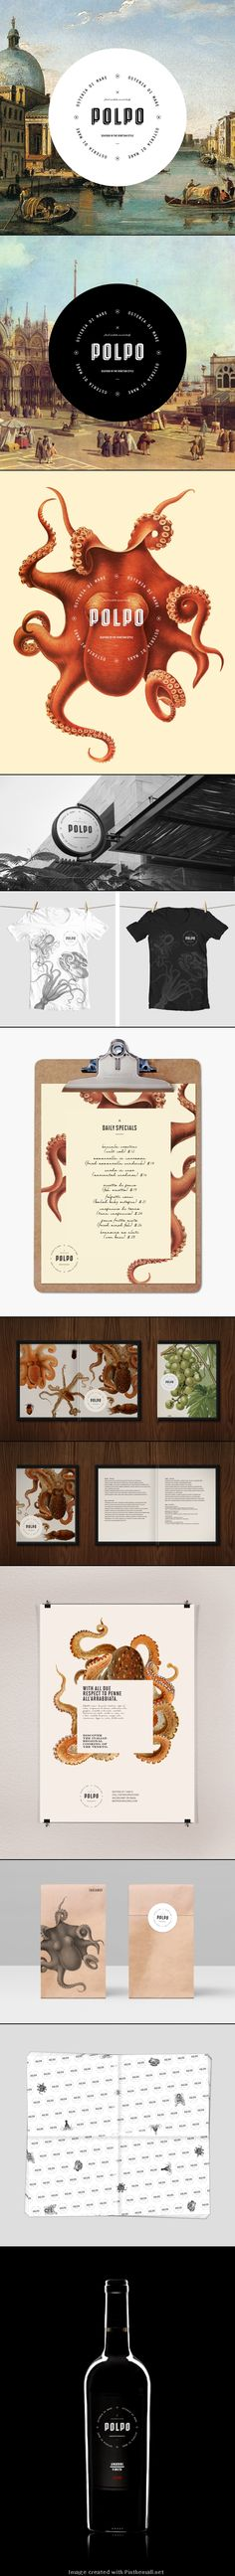 B+B - Print design - Polpo Restaurant by Richard Marazzi for all our squid/ octopus loving peeps : ) PD Menu Design, Corporate Design, Graphic Design Typography, Graphic Design Illustration, Print Design, Logo Design, Layout Design, Corporate Identity, Icon Design